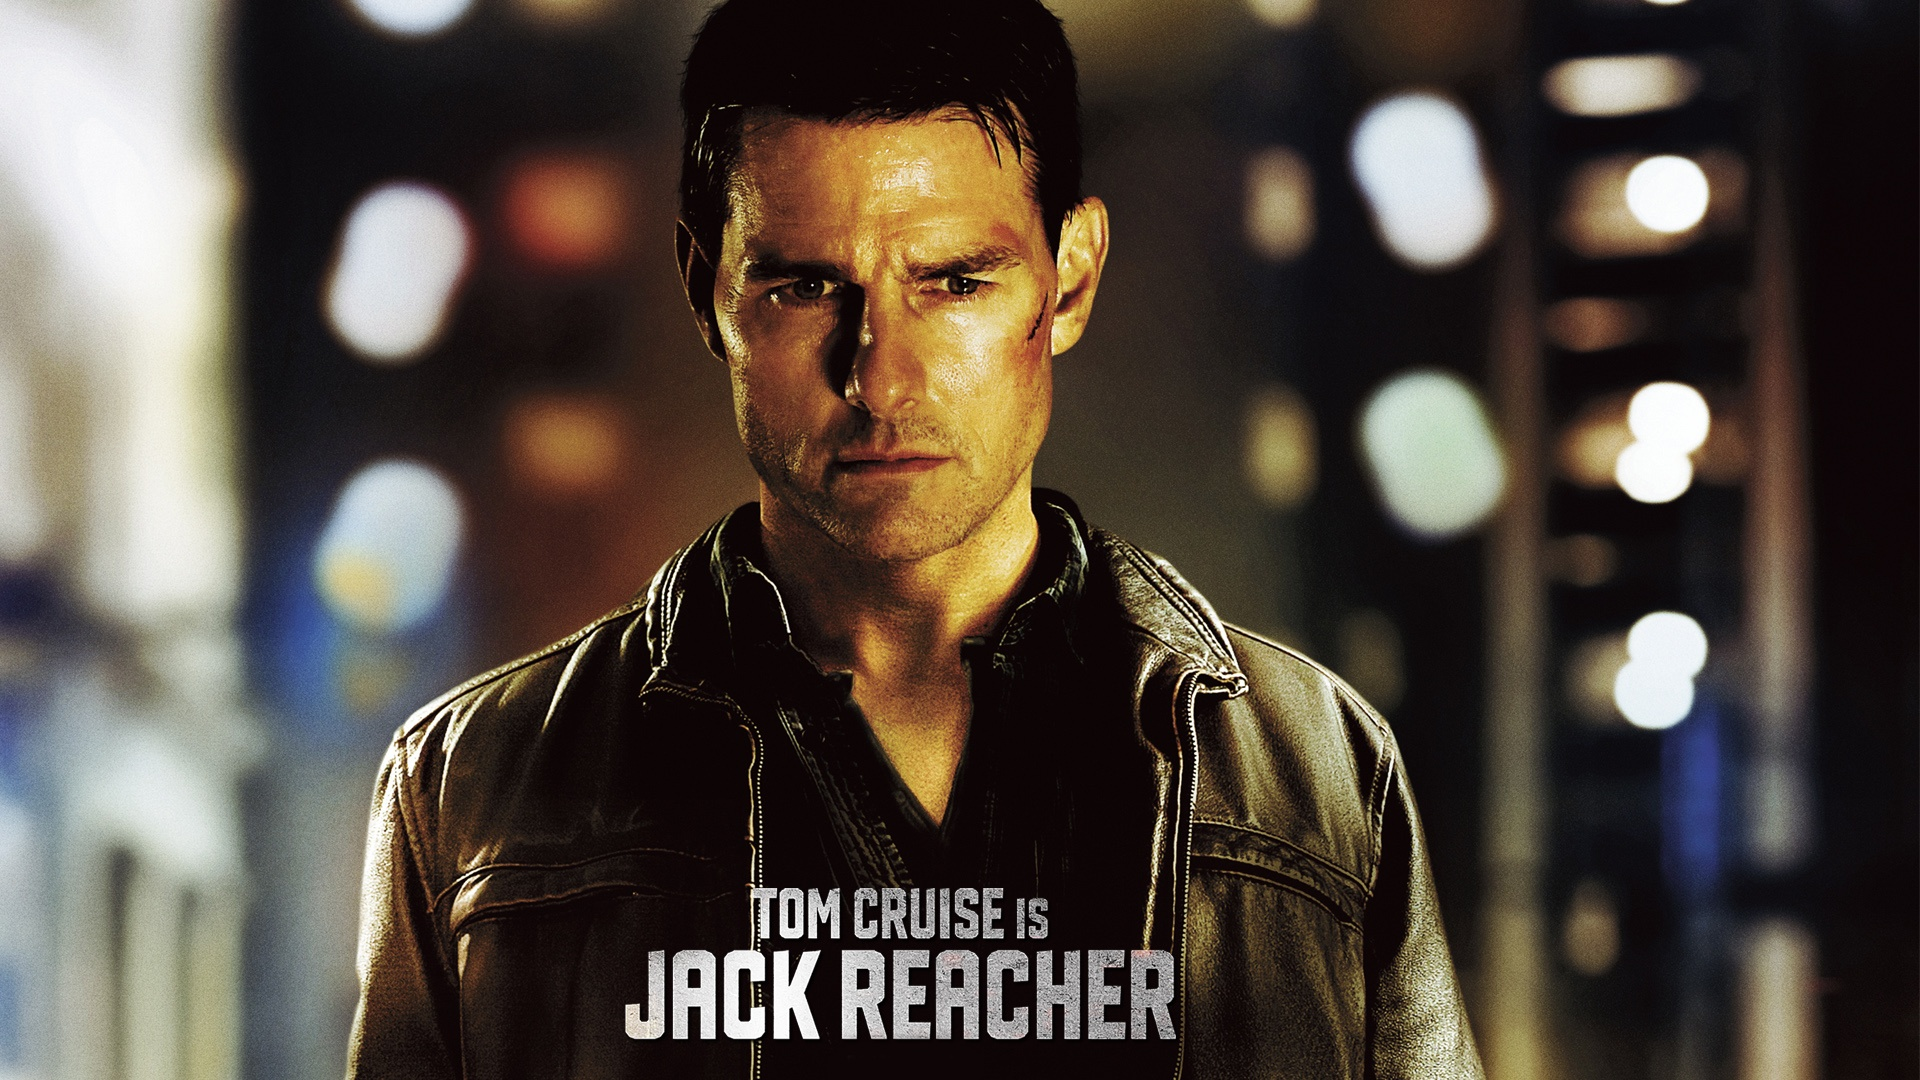 Tom Cruise In Jack Reacher 4158574 1920x1200 All For Desktop